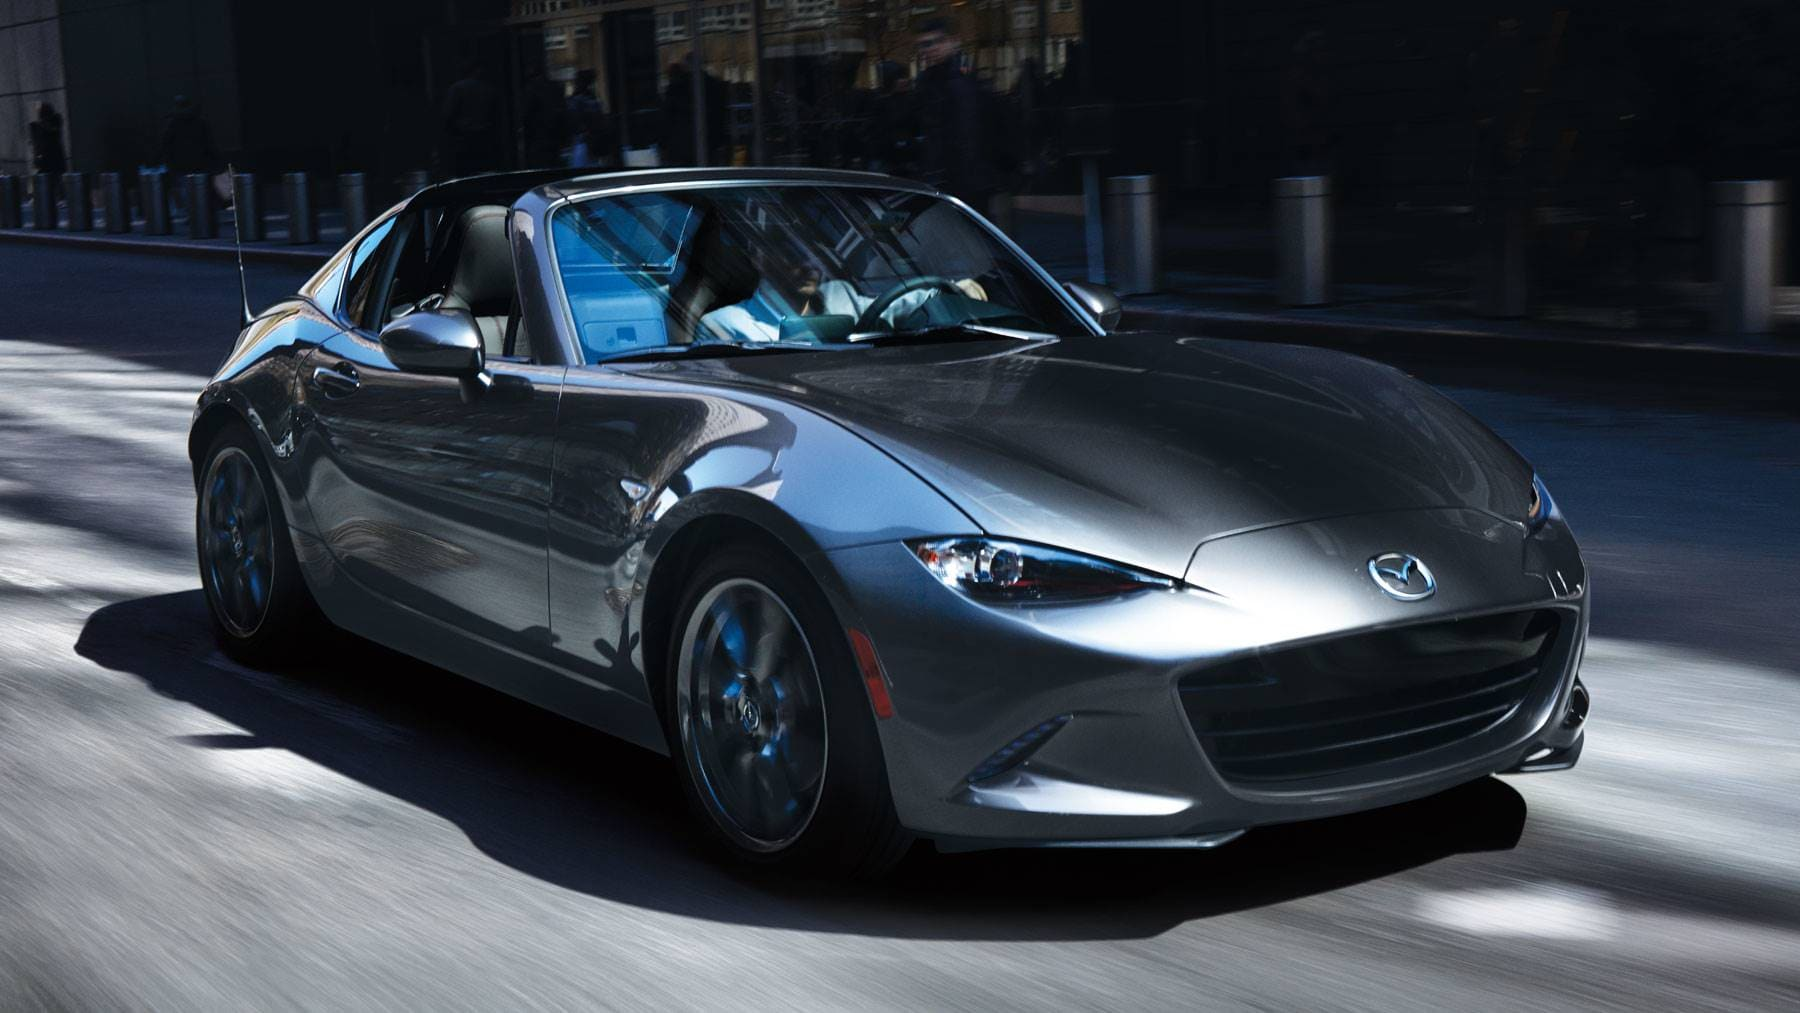 2019 mazda mx 5 miata revealed thompson mazda. Black Bedroom Furniture Sets. Home Design Ideas